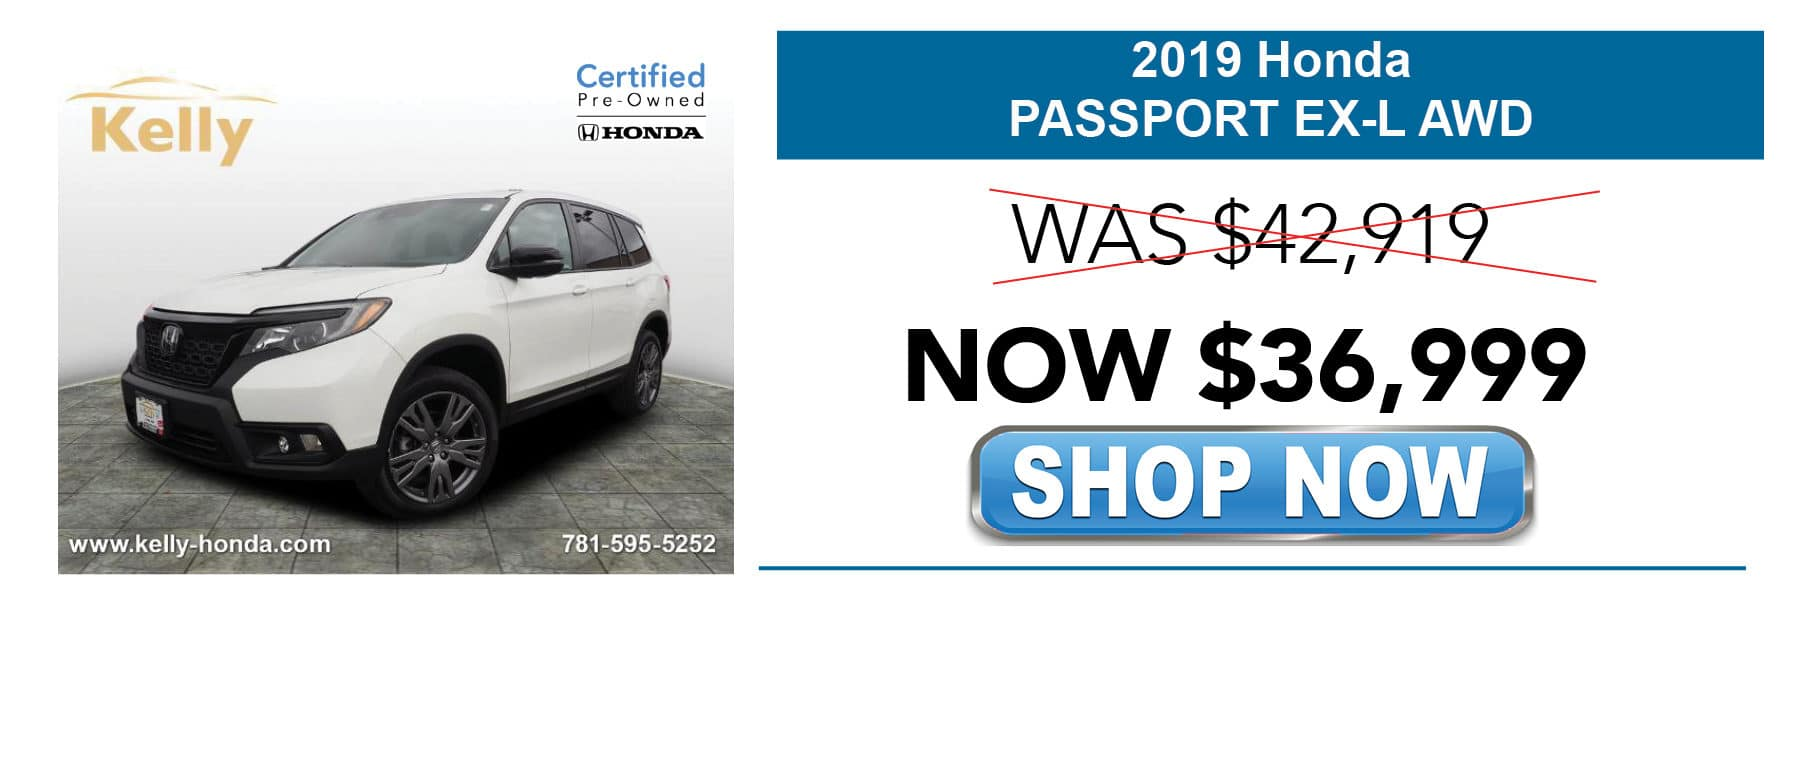 2019 Certified Pre-Owned Honda Passport EX-L Now $36,999